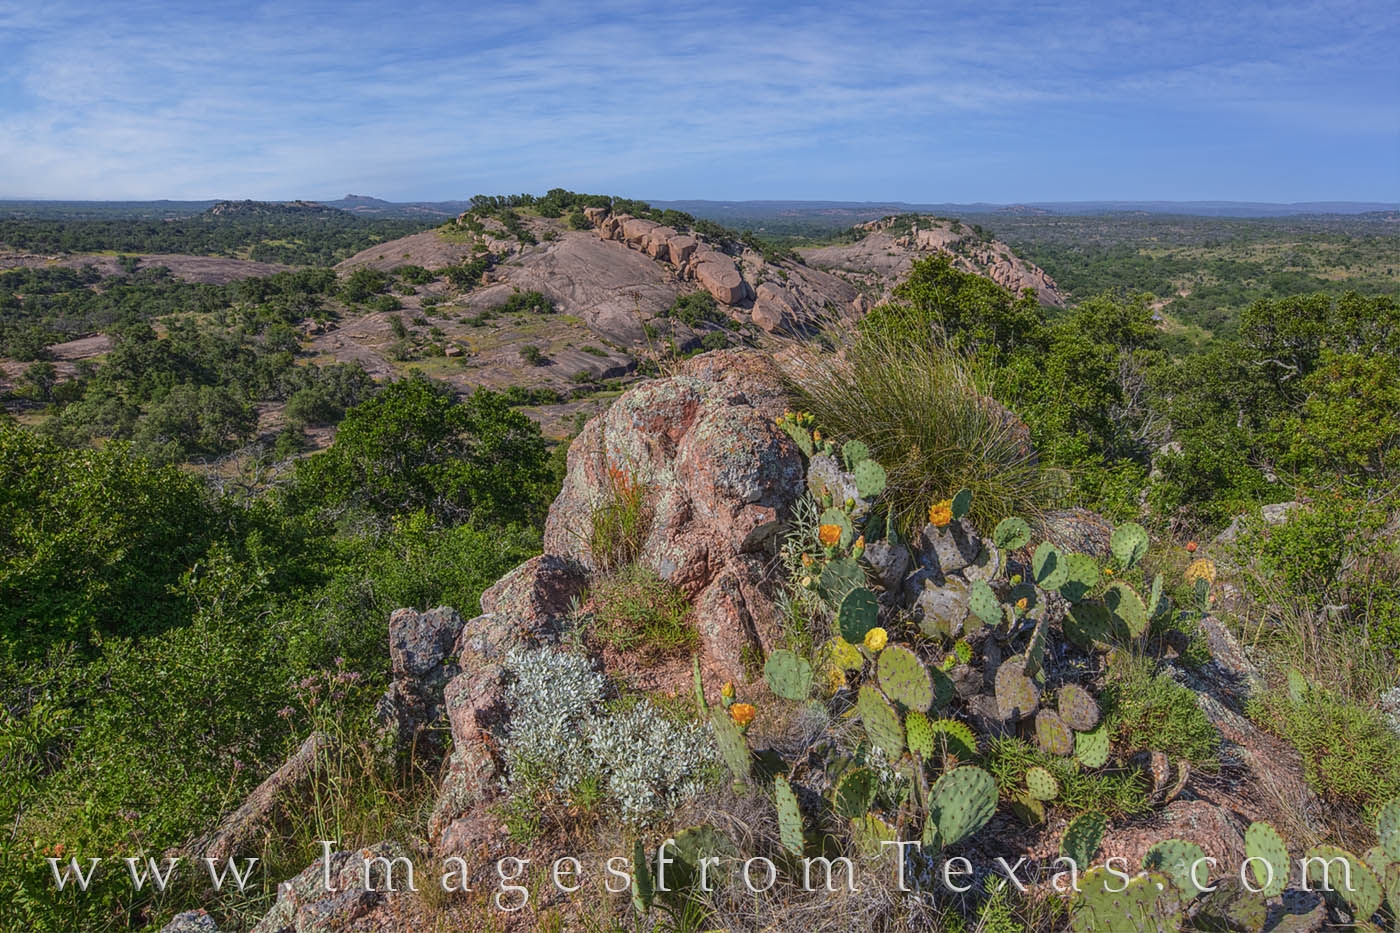 turkey peak, freshman mountain, buzzard's roost, enchanted rock, texas hill country, spring, photo